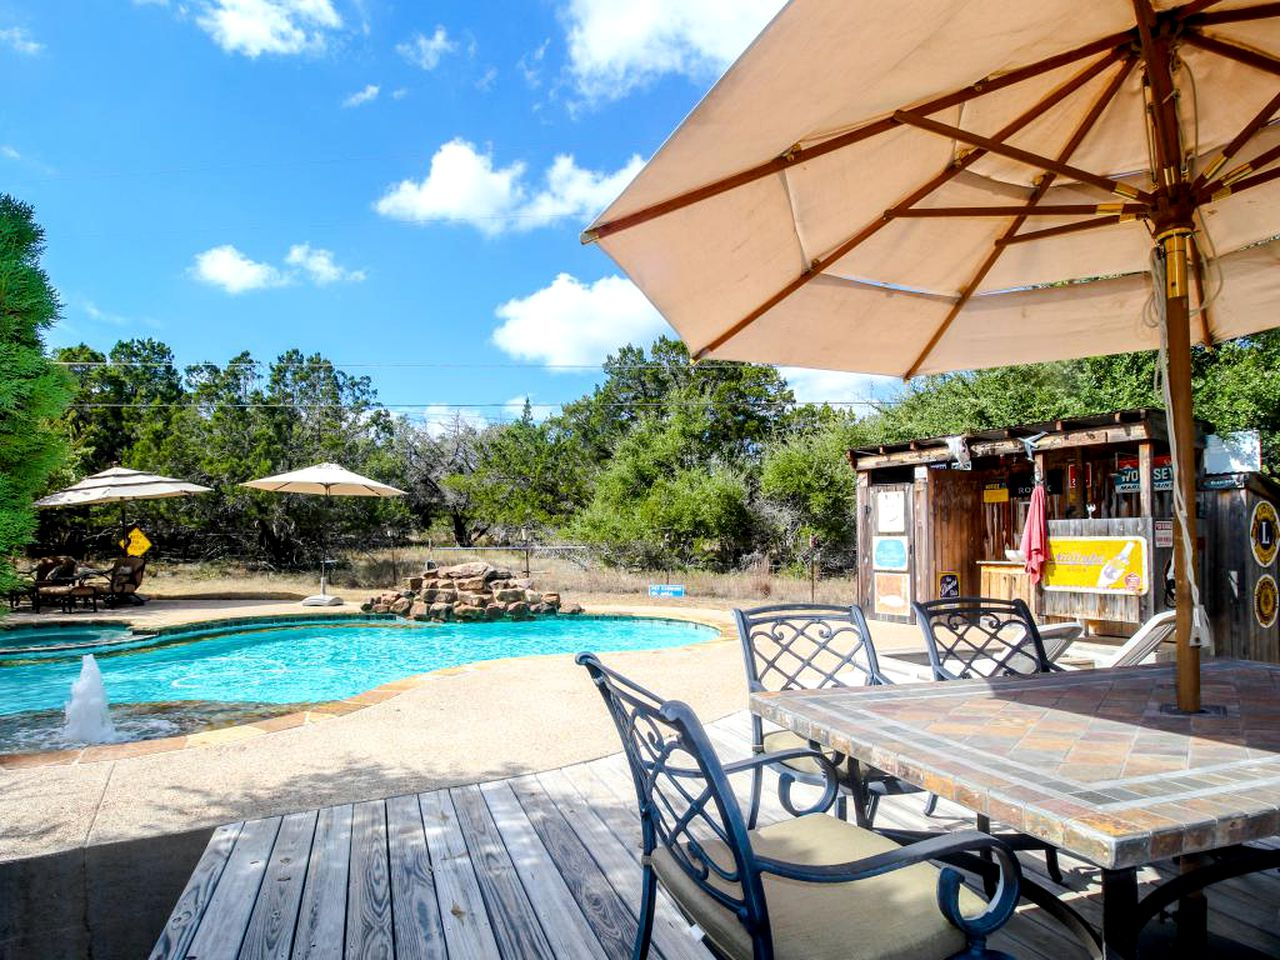 Luxury cottage with pool in Dripping Springs, Texas